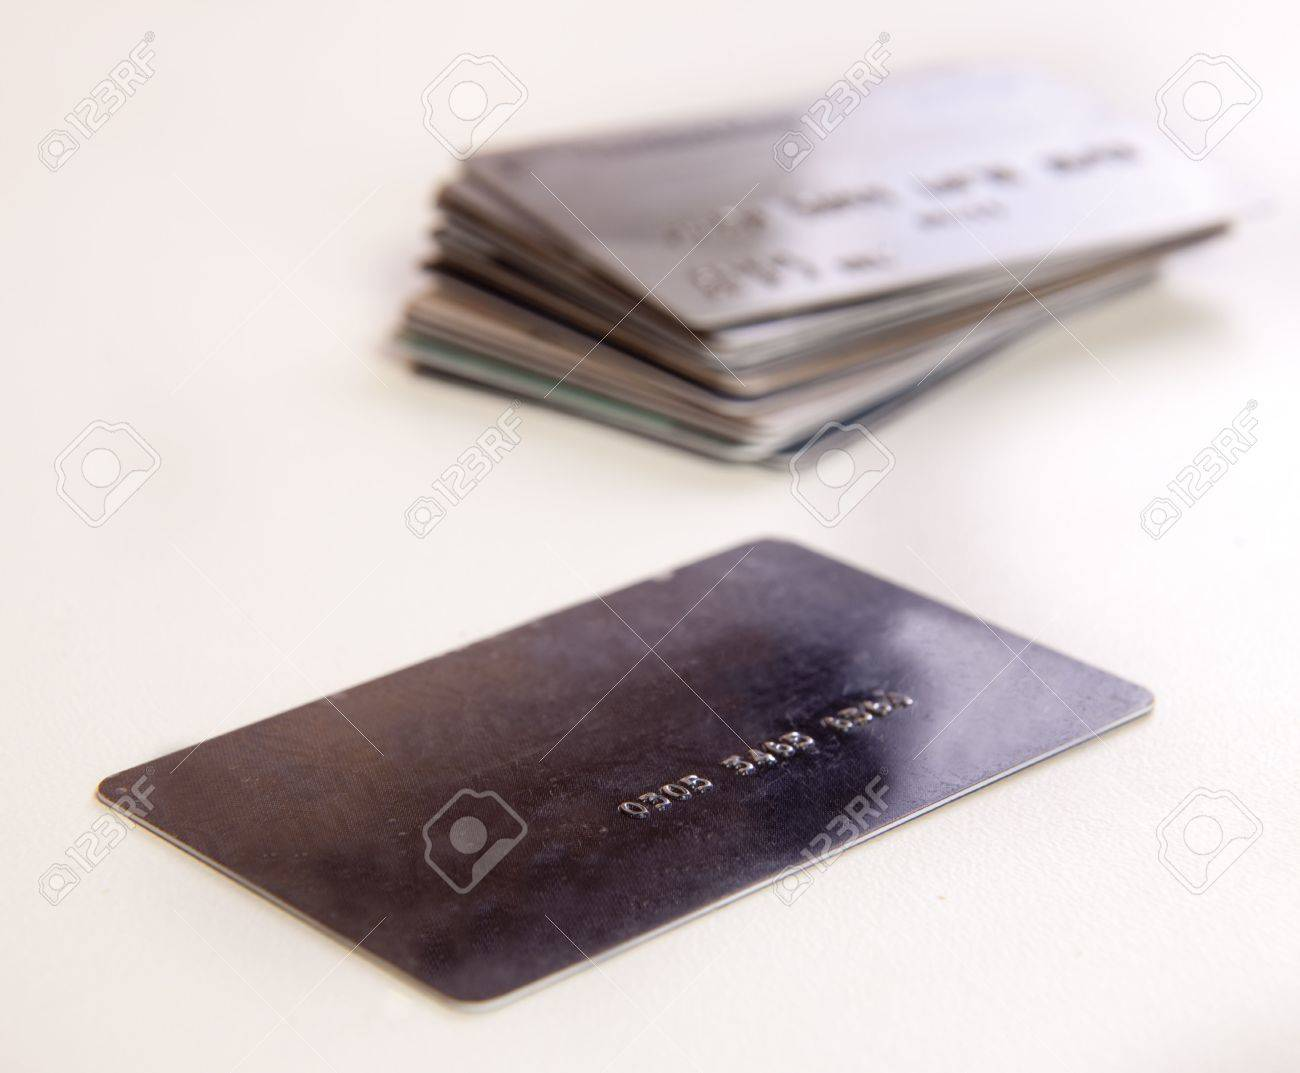 Stack of credit cards on a white background. Stock Photo - 7833024